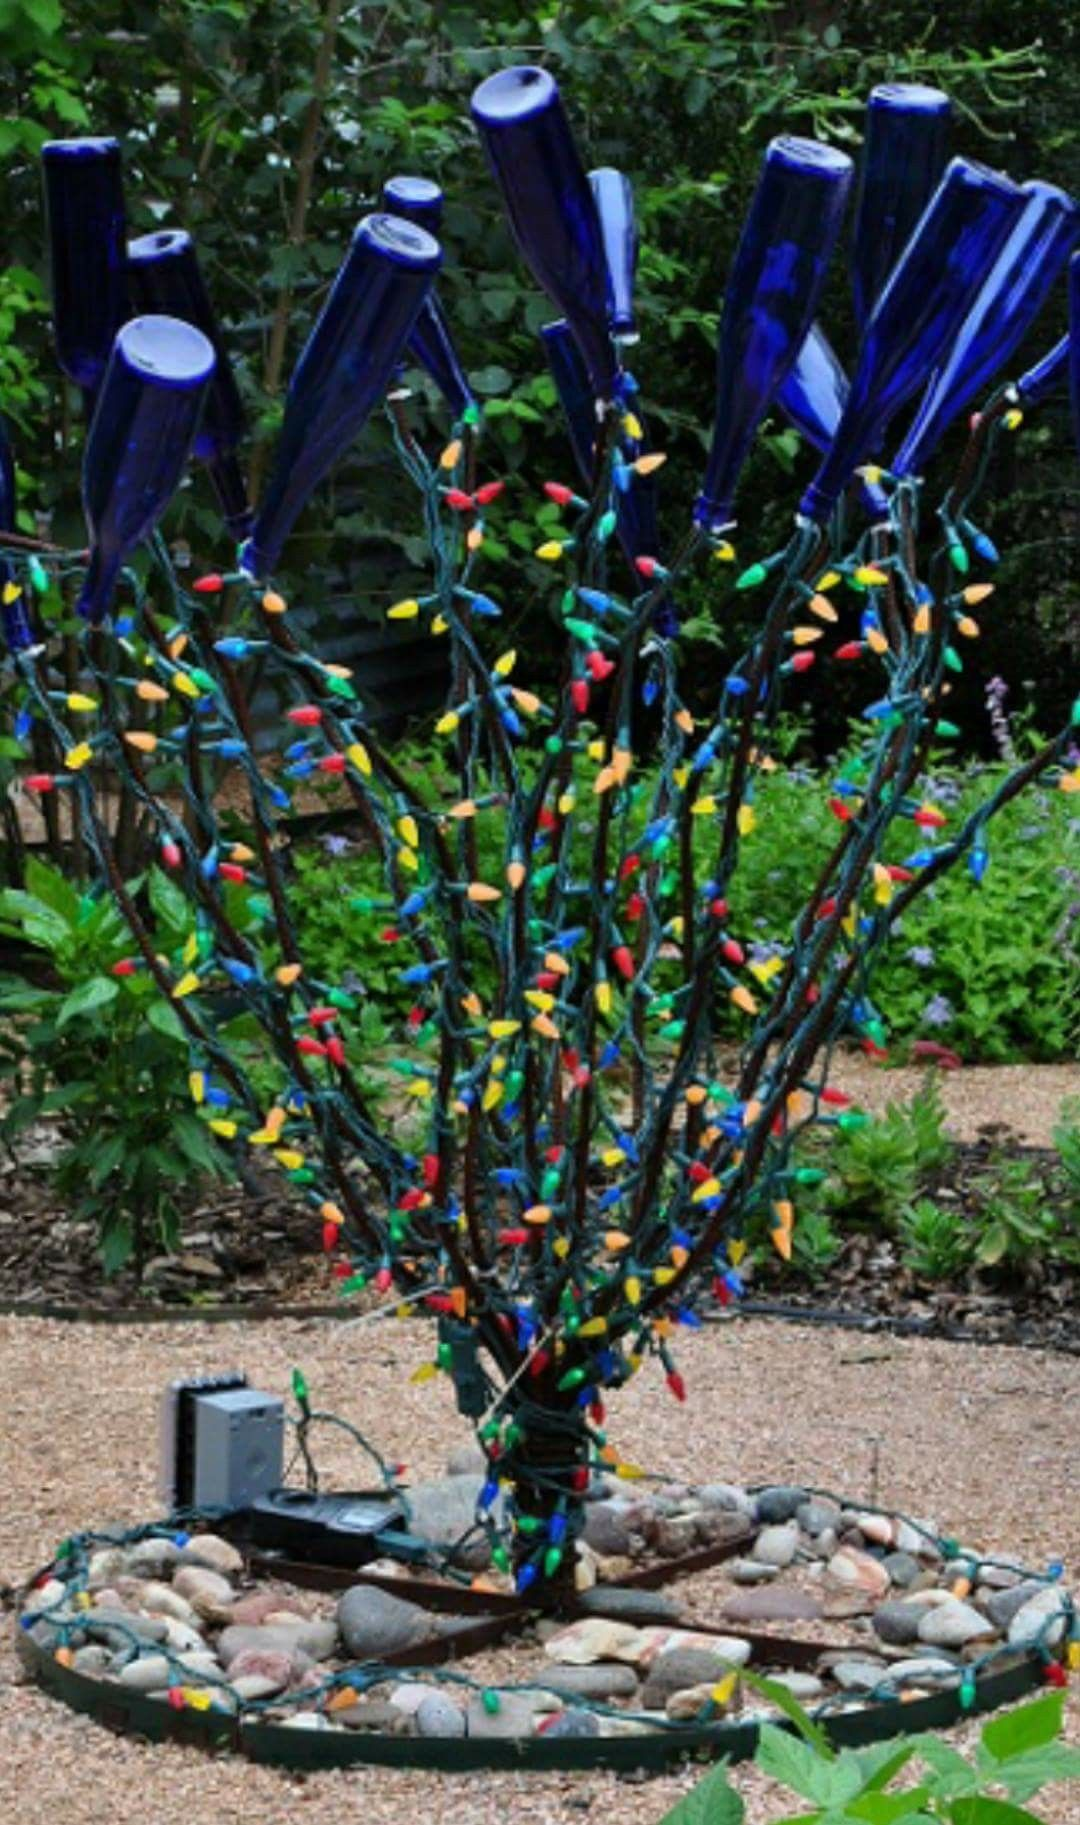 c12cb1d22576f5786cc66d1cda3c9346 - Blue Bottle Trees Gardens And Collections